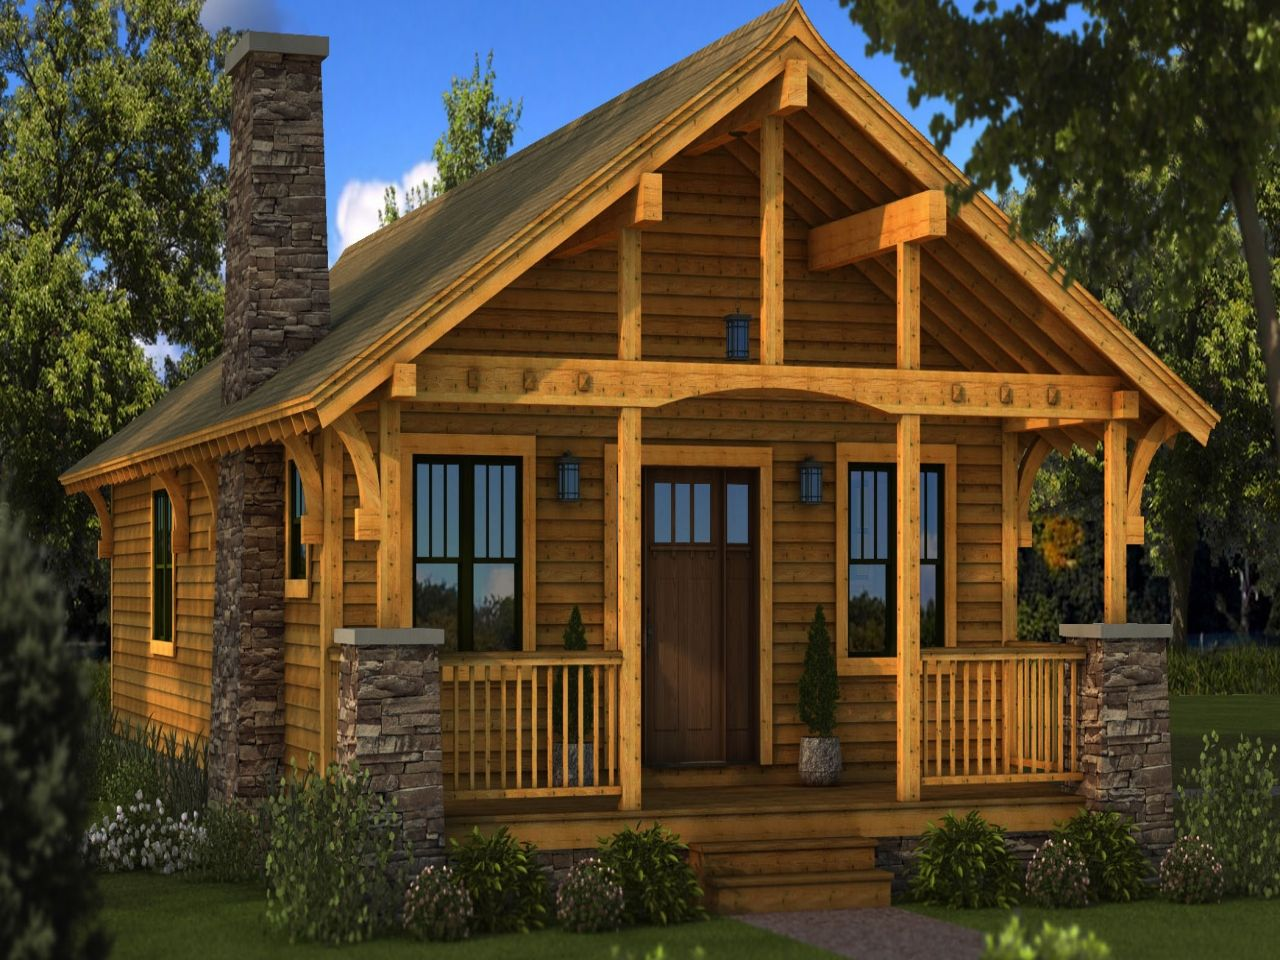 Small log cabin homes plans one story cabin plans for Small cabin layouts